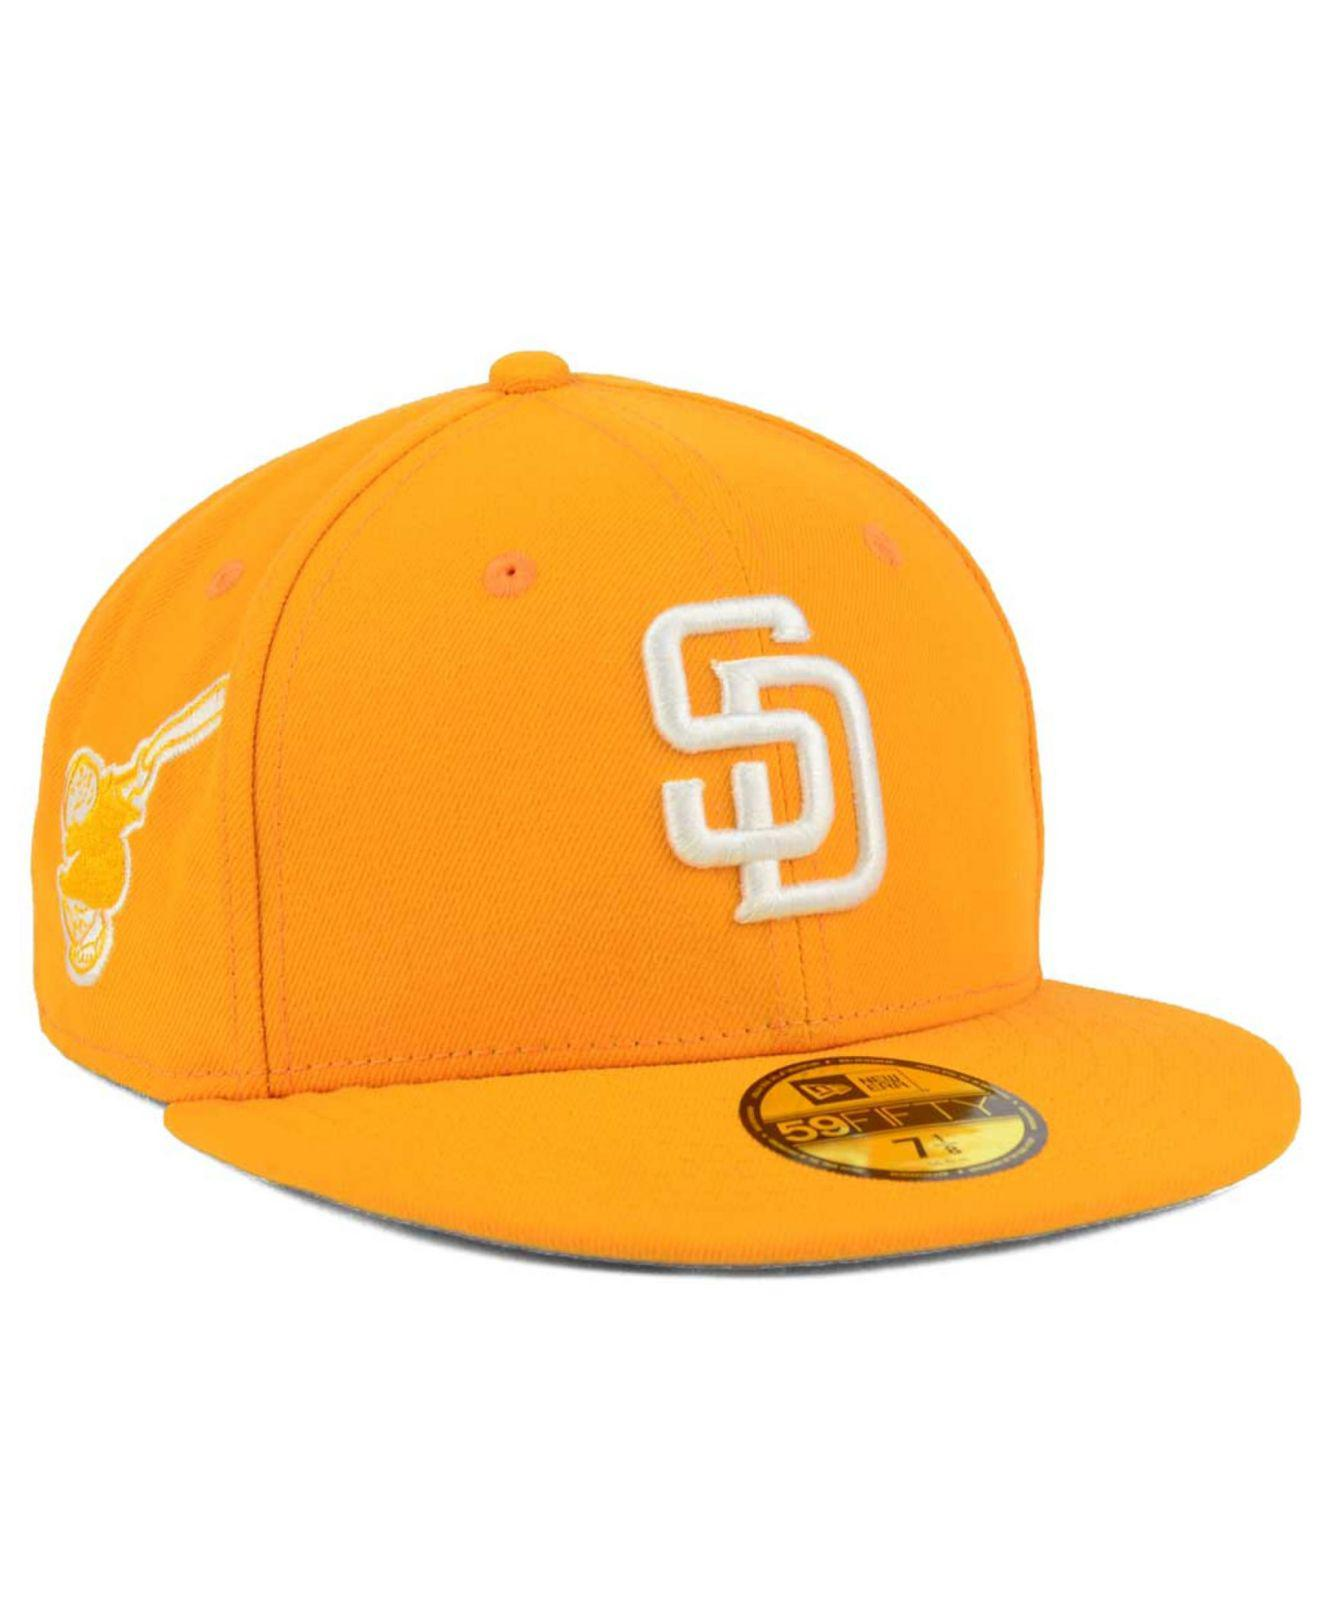 half off dc85c c0542 KTZ. Men s Yellow San Diego Padres C-dub Patch 59fifty Fitted Cap